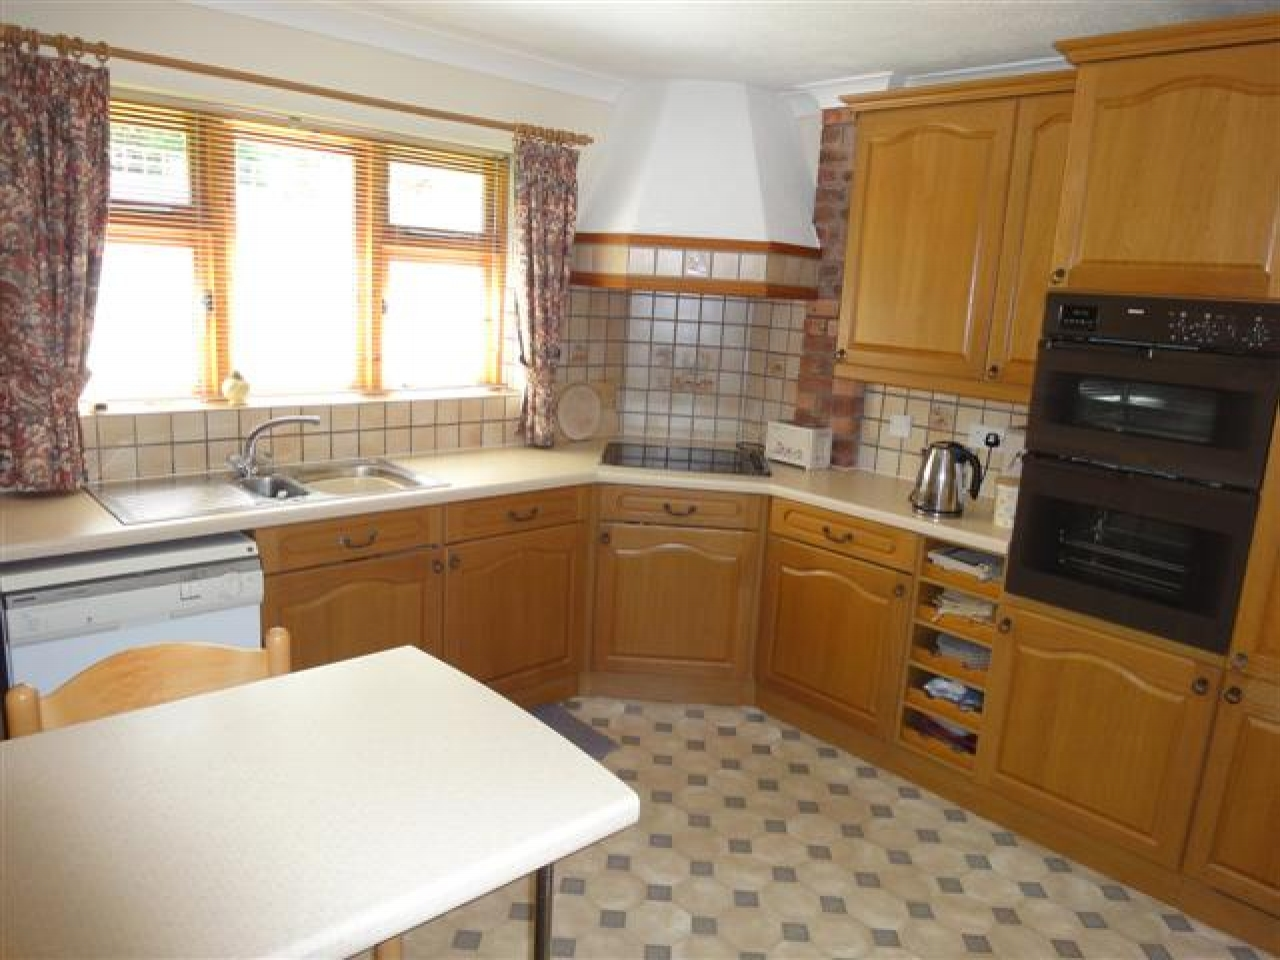 5 bedroom detached house Under Offer in Abergele - Photograph 4